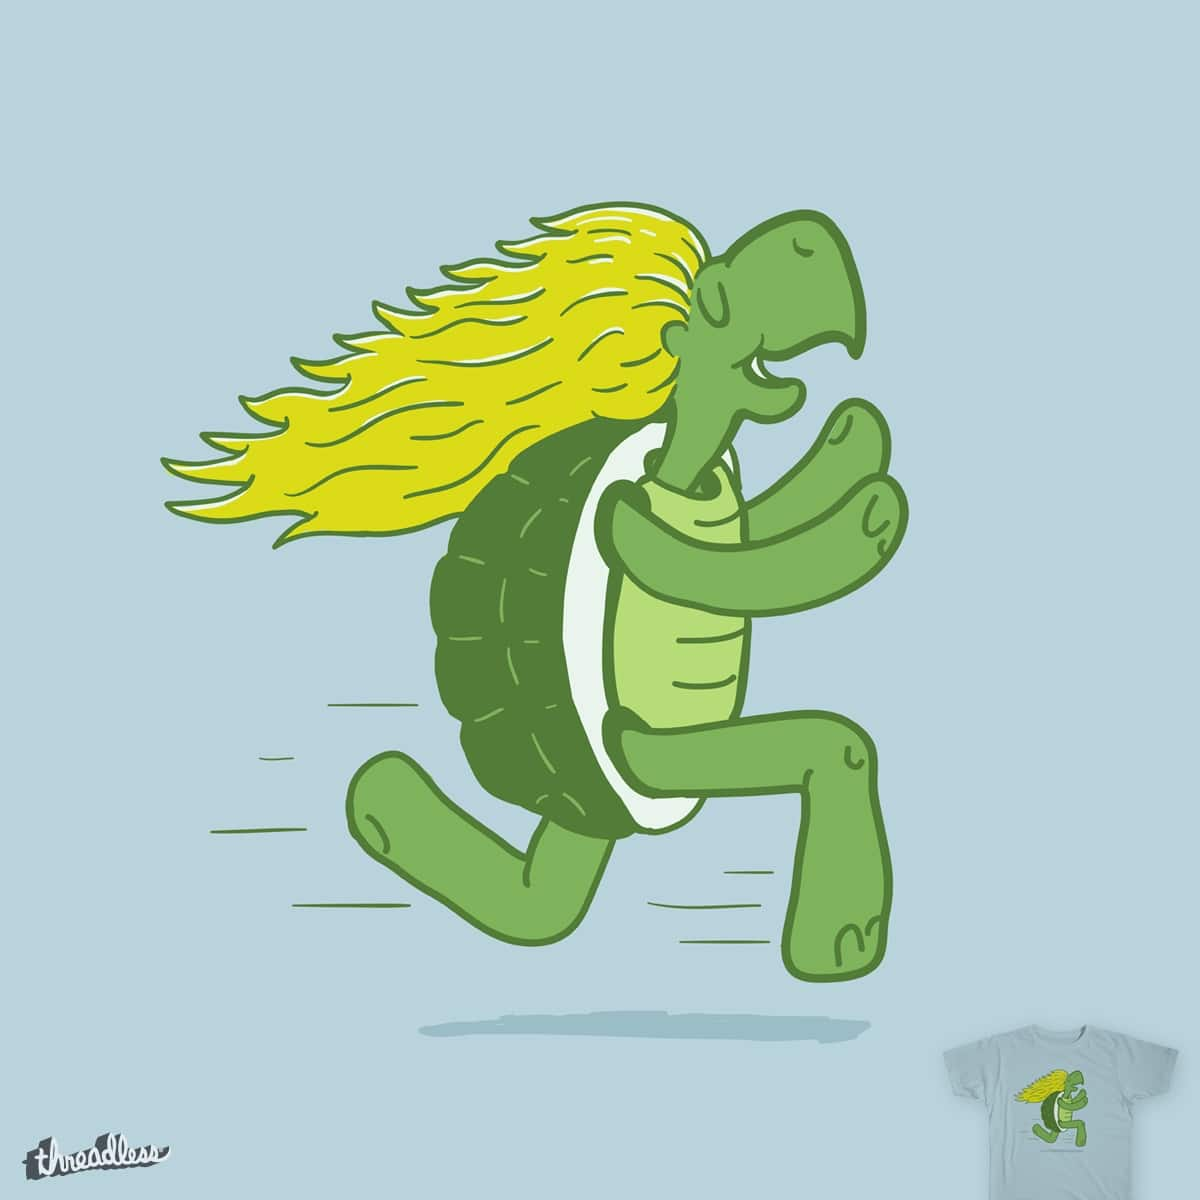 Tortoise and that Hair by murraymullet on Threadless